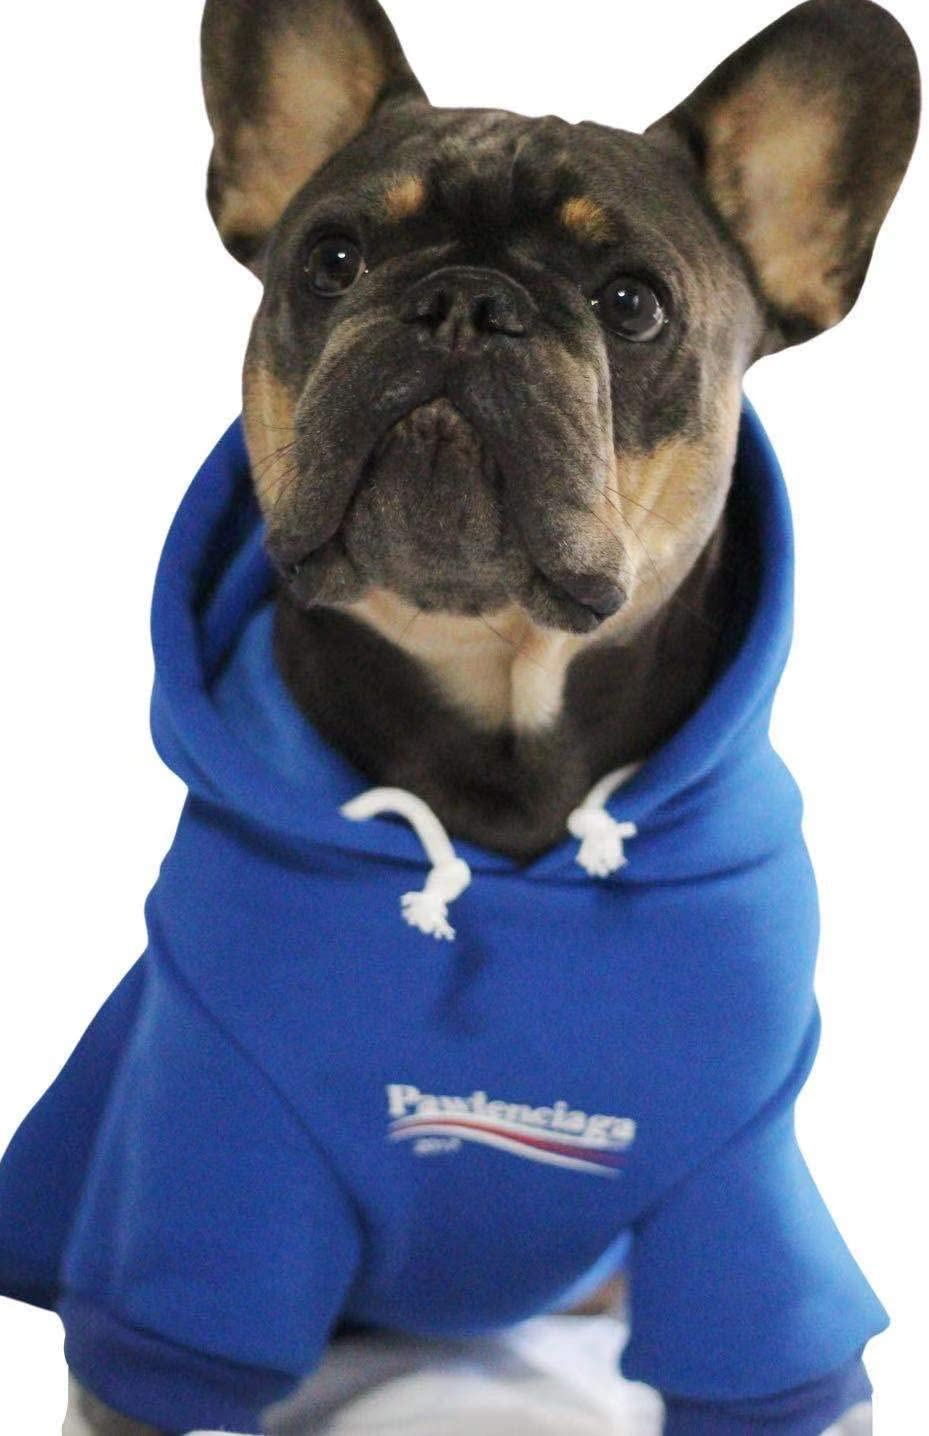 Dog Outfit for Dog Cat Puppy Small Medium Stylish Streetwear Blue Dog Sweatshirt Tracksuits ChoChoCho Dog Hoodie Pet Clothing Cotton Cats Hoodies